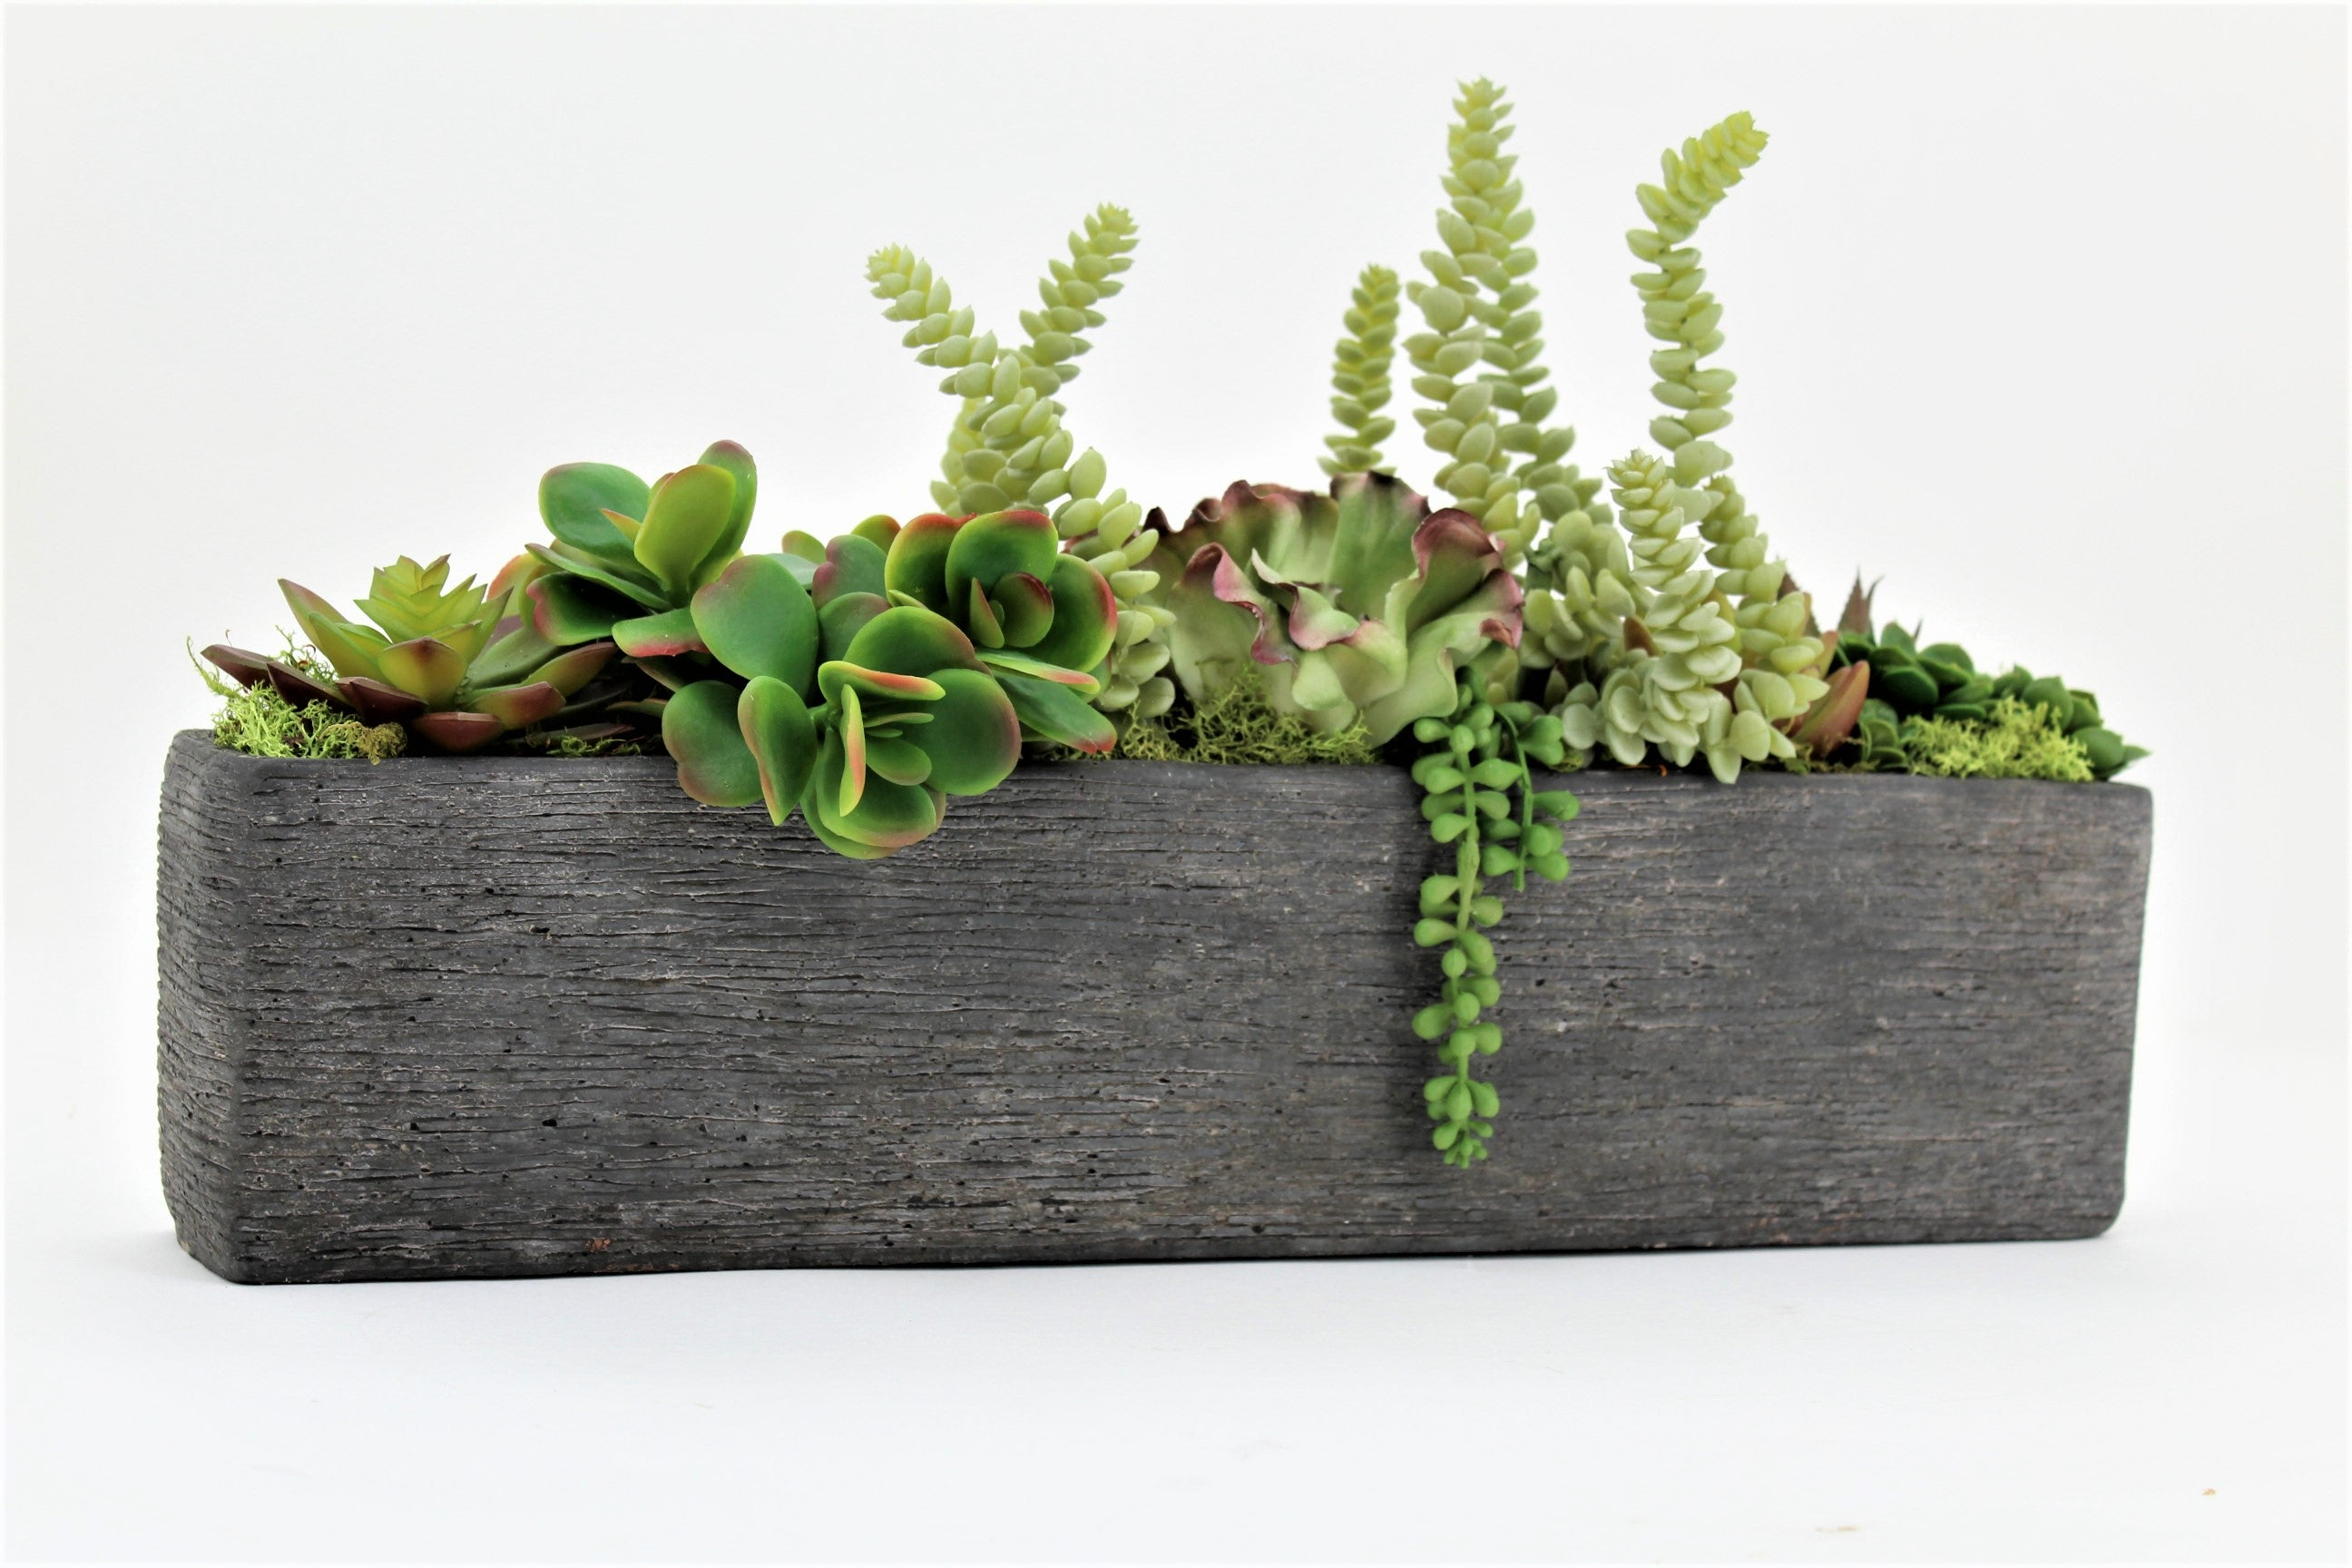 Succulent Garden in Large Rectangle Box